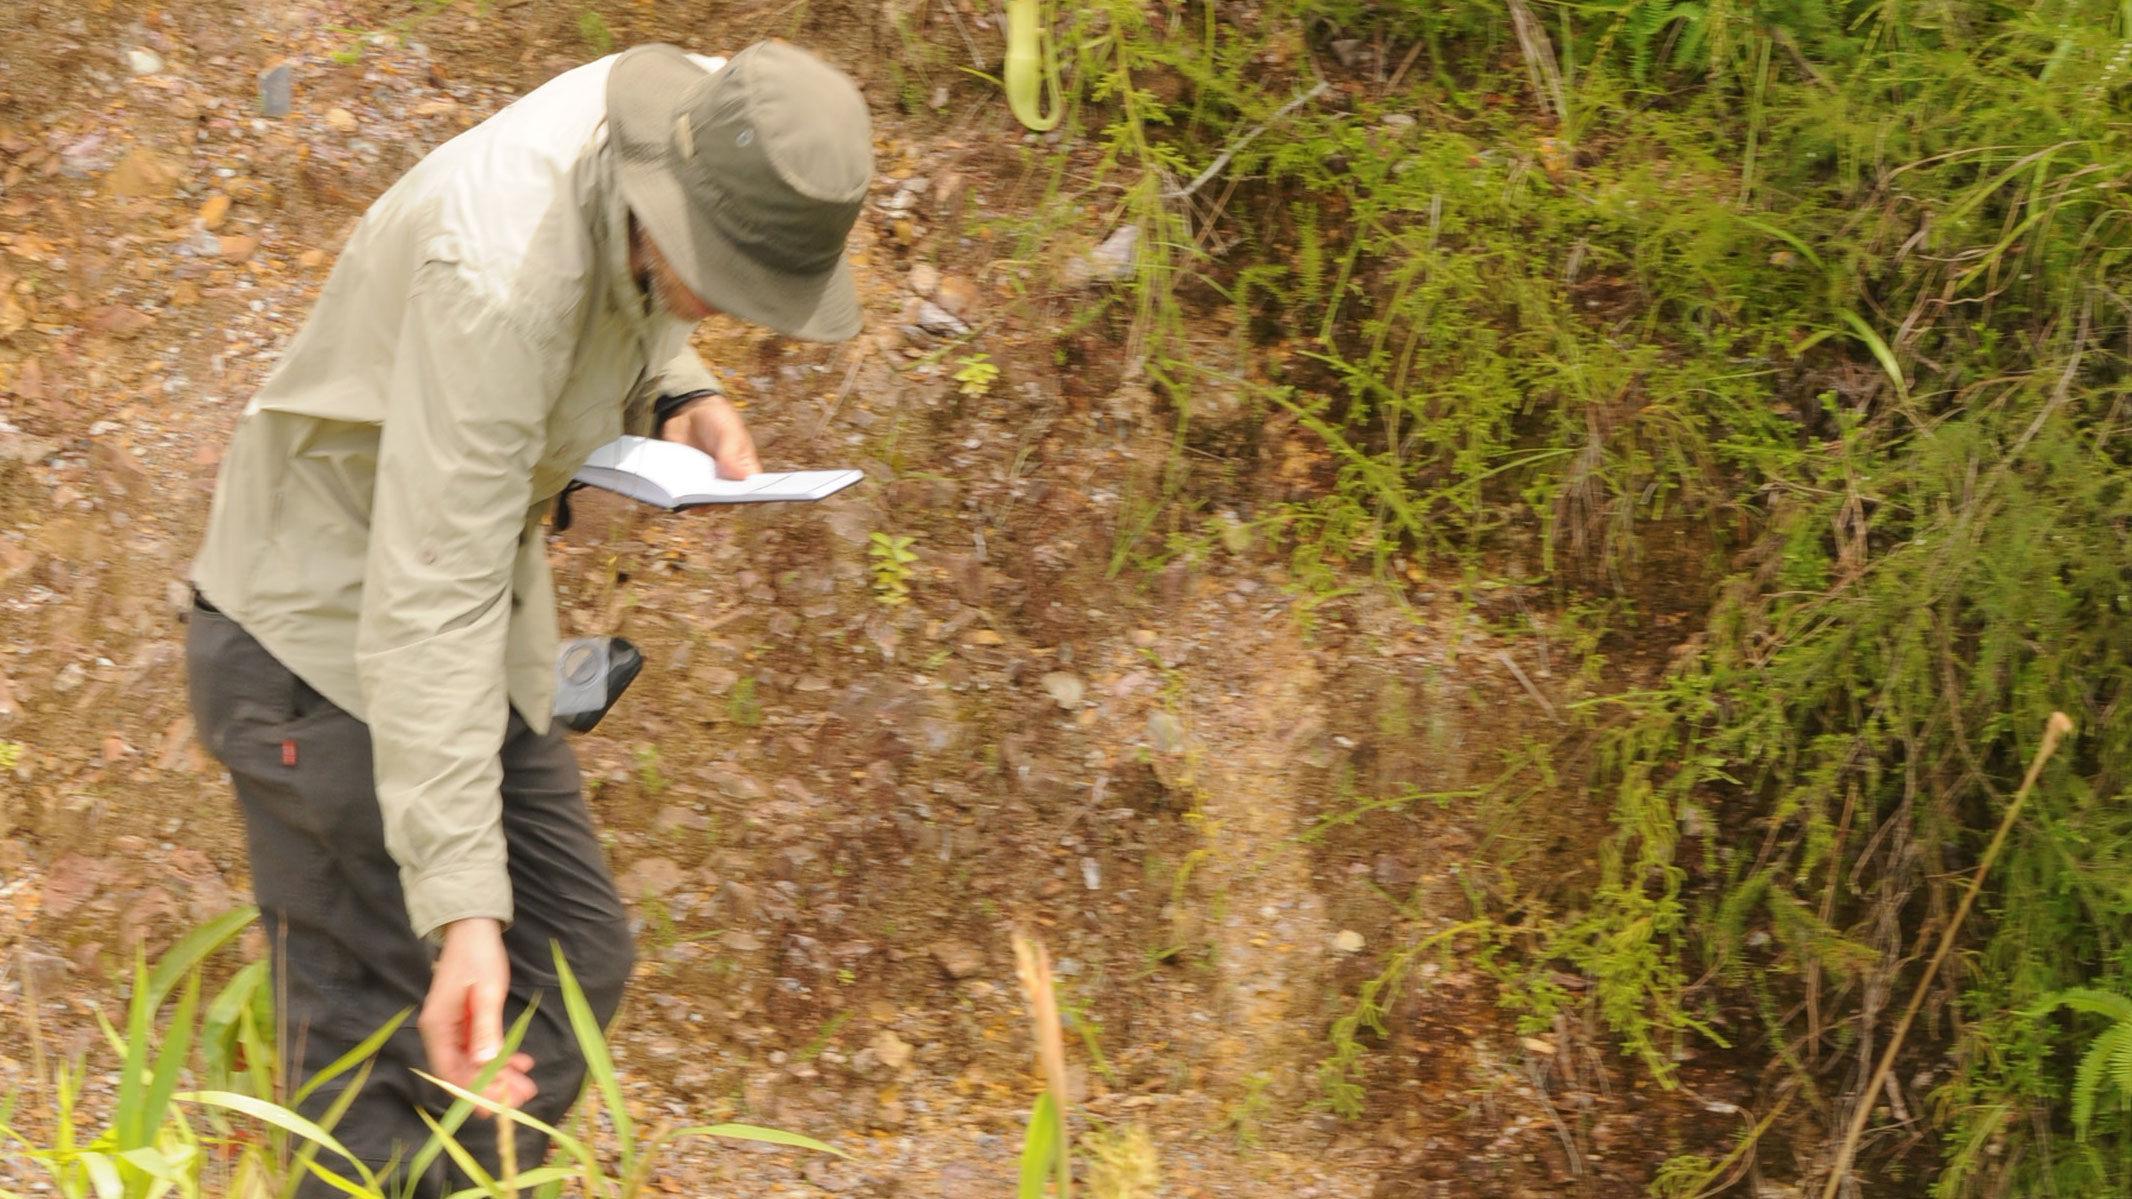 Image showing Bruce Murphy collecting Nepenthes for research at Botak.